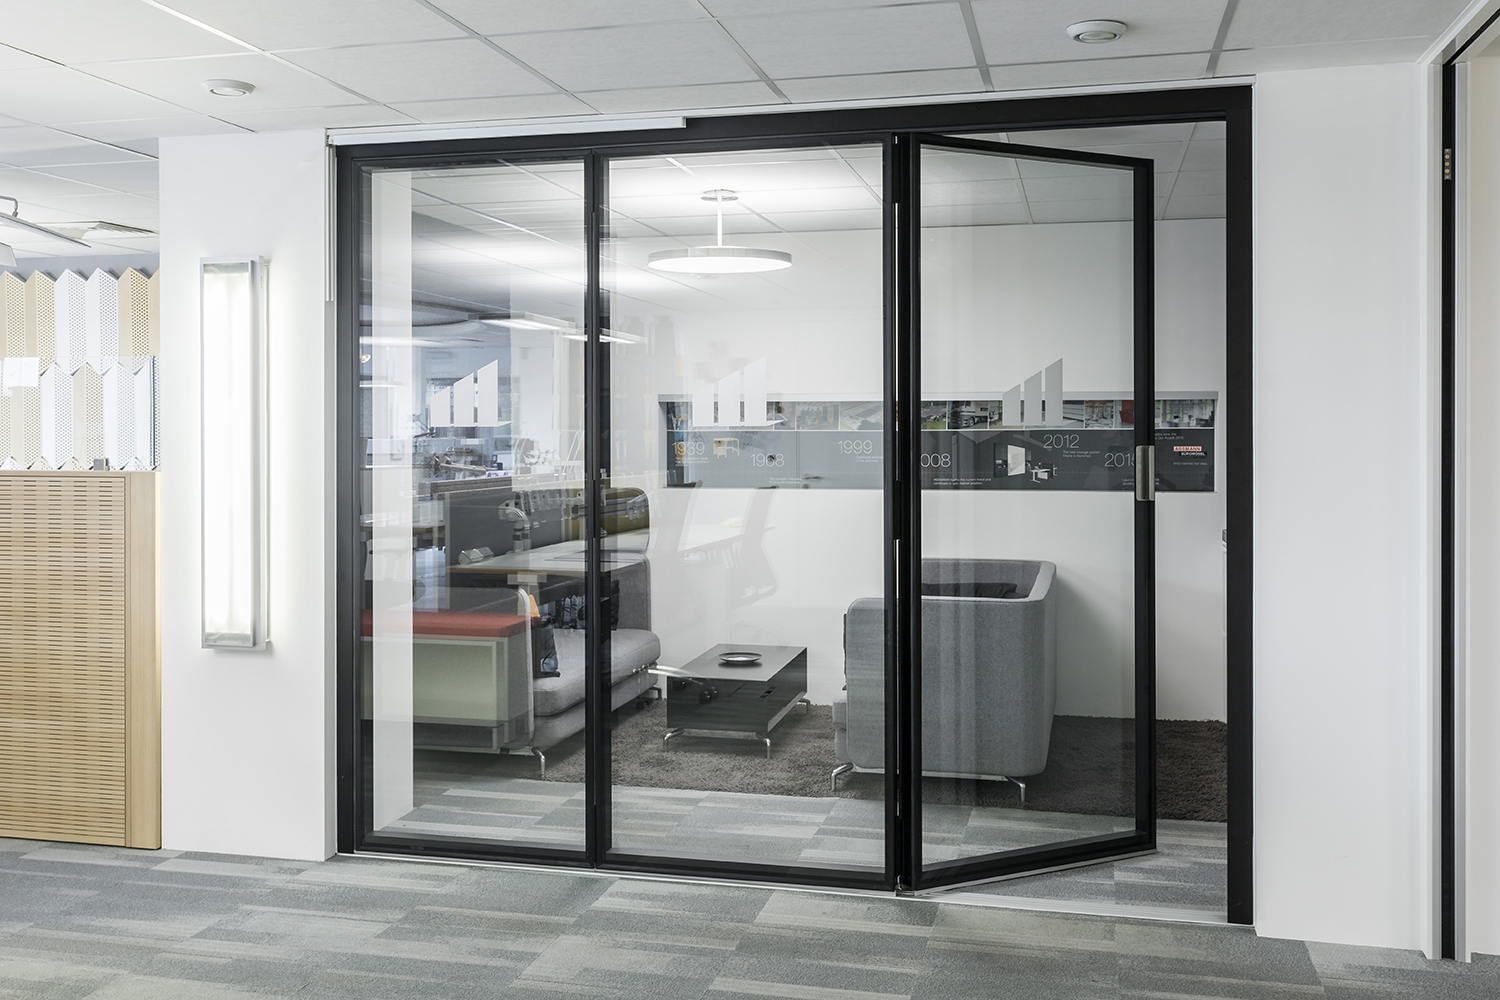 Movawall's Type G200 system features in new Business School